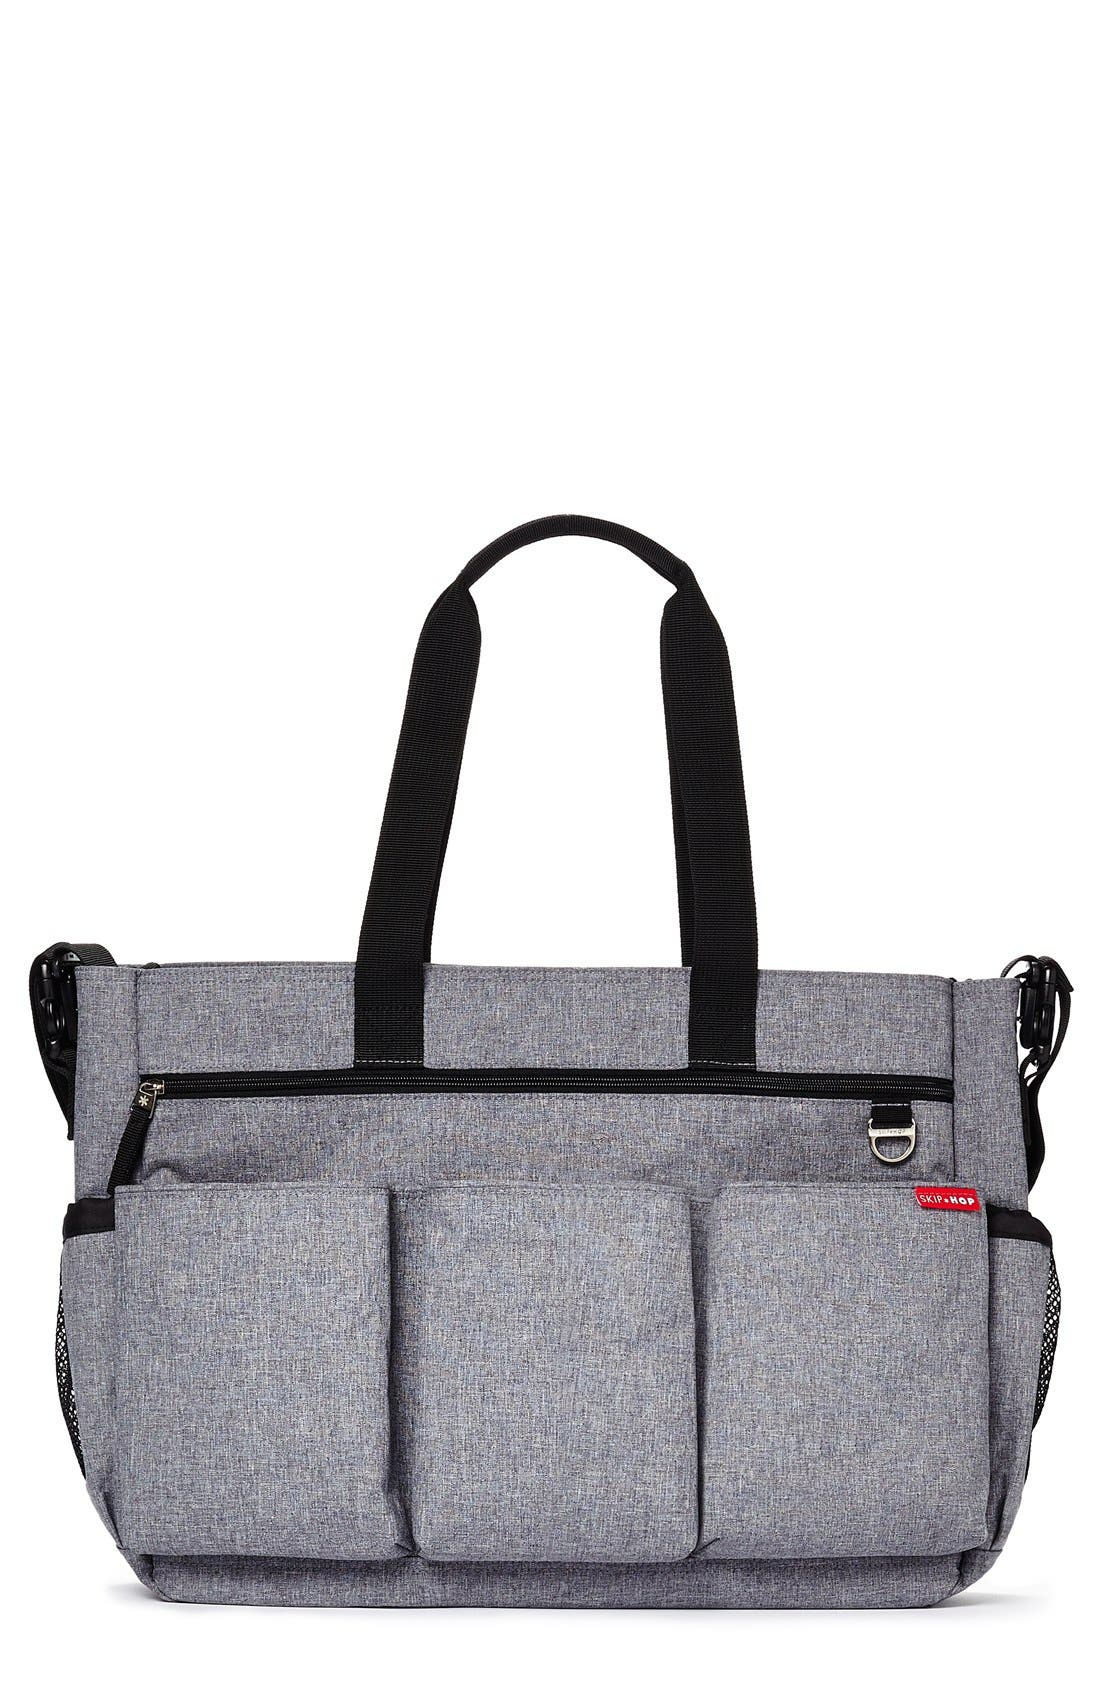 Alternate Image 1 Selected - Skip Hop 'Duo Double Signature' Diaper Bag